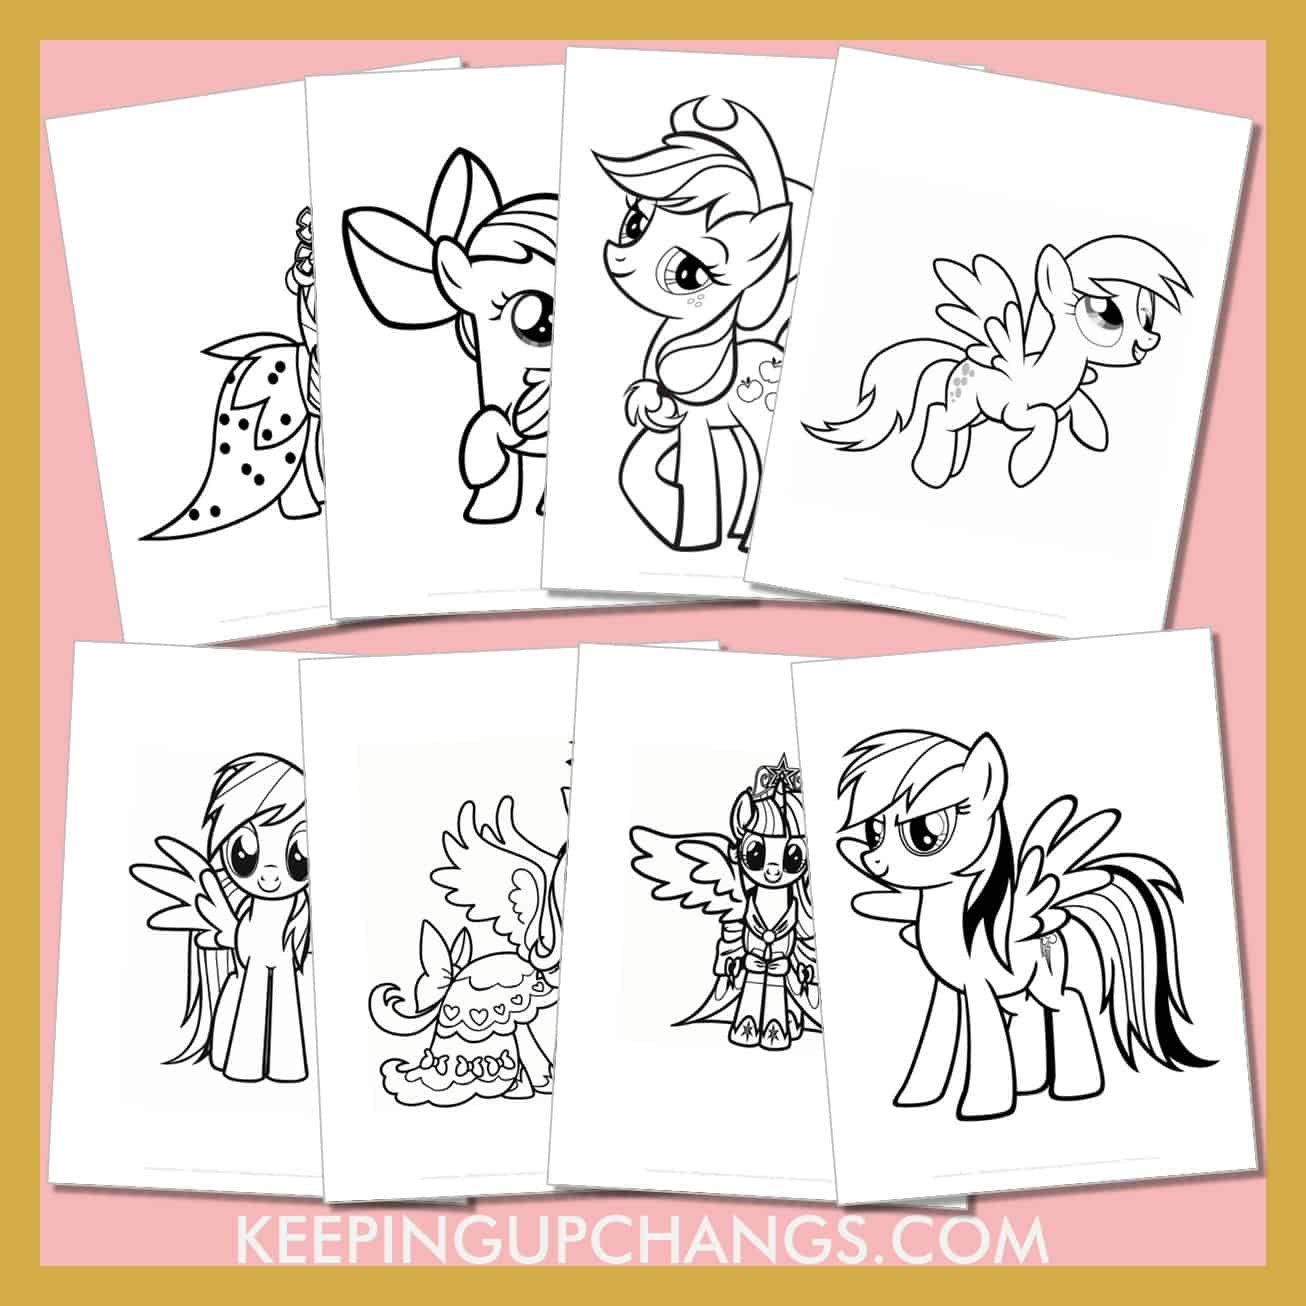 my little pony colouring sheets including rainbow dash, rarity, twilight sparkle, apple jack and more.